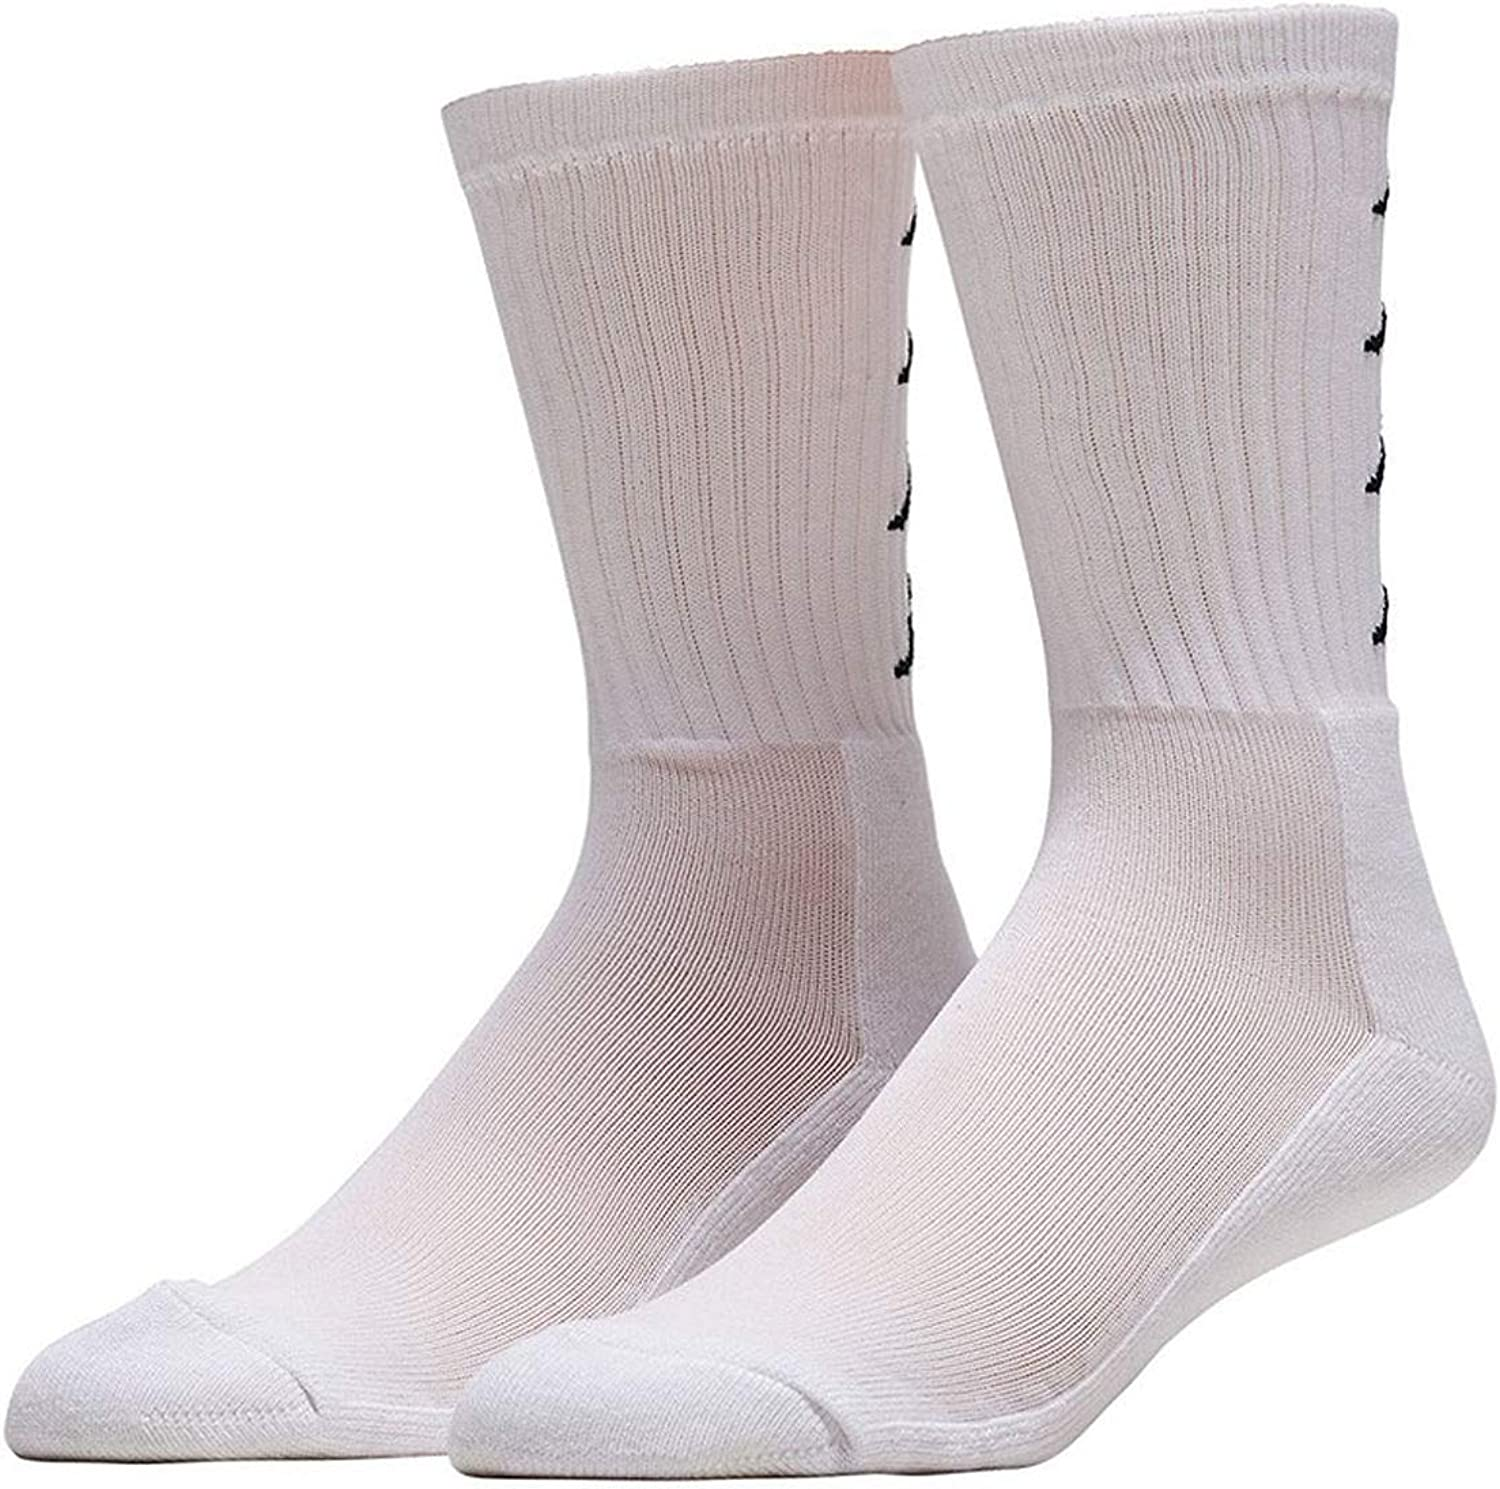 Kappa Socks & Underwear The Authentic Amal Sock in White and Black L